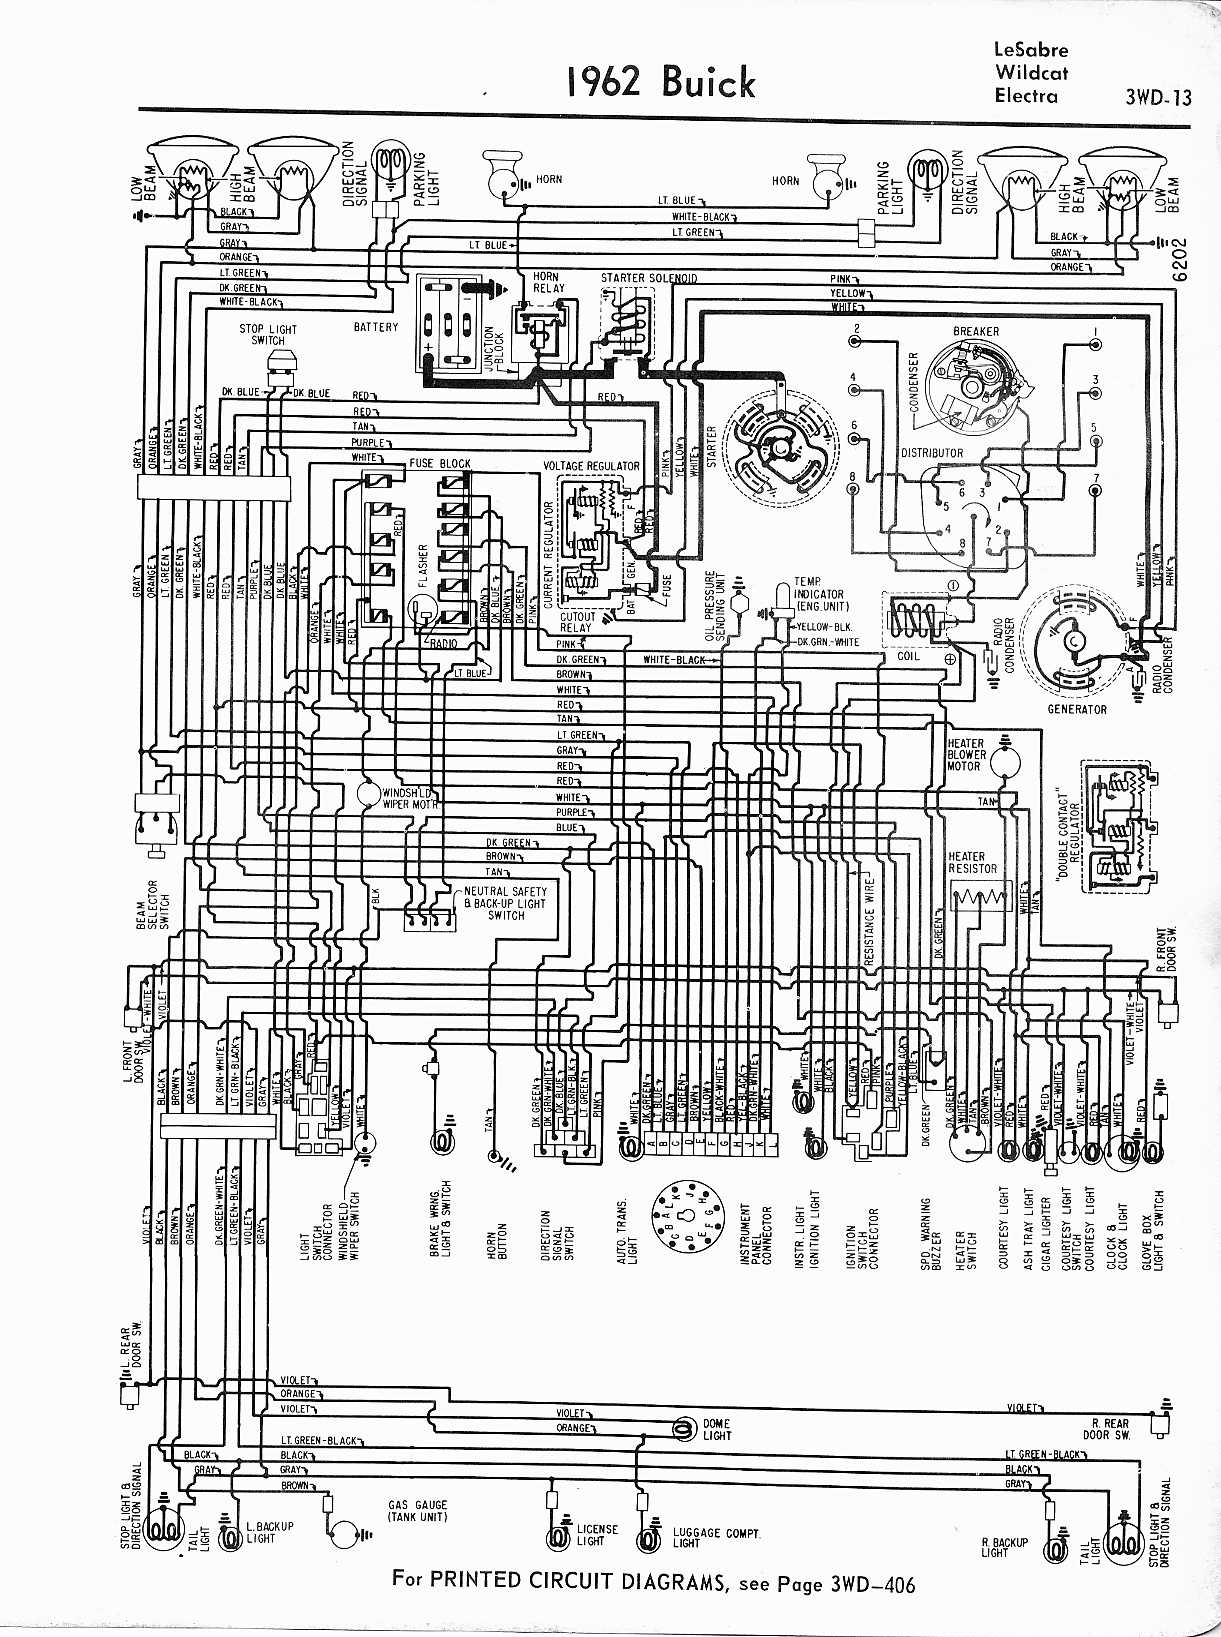 95 Buick Riviera Fuse Box Diagram Wiring Library. 1967 Buick Skylark Fuse Box Diagram List Of Schematic Circuit 1998 Lesabre Map. Buick. 1998 Buick Regal Electrical Diagrams At Scoala.co